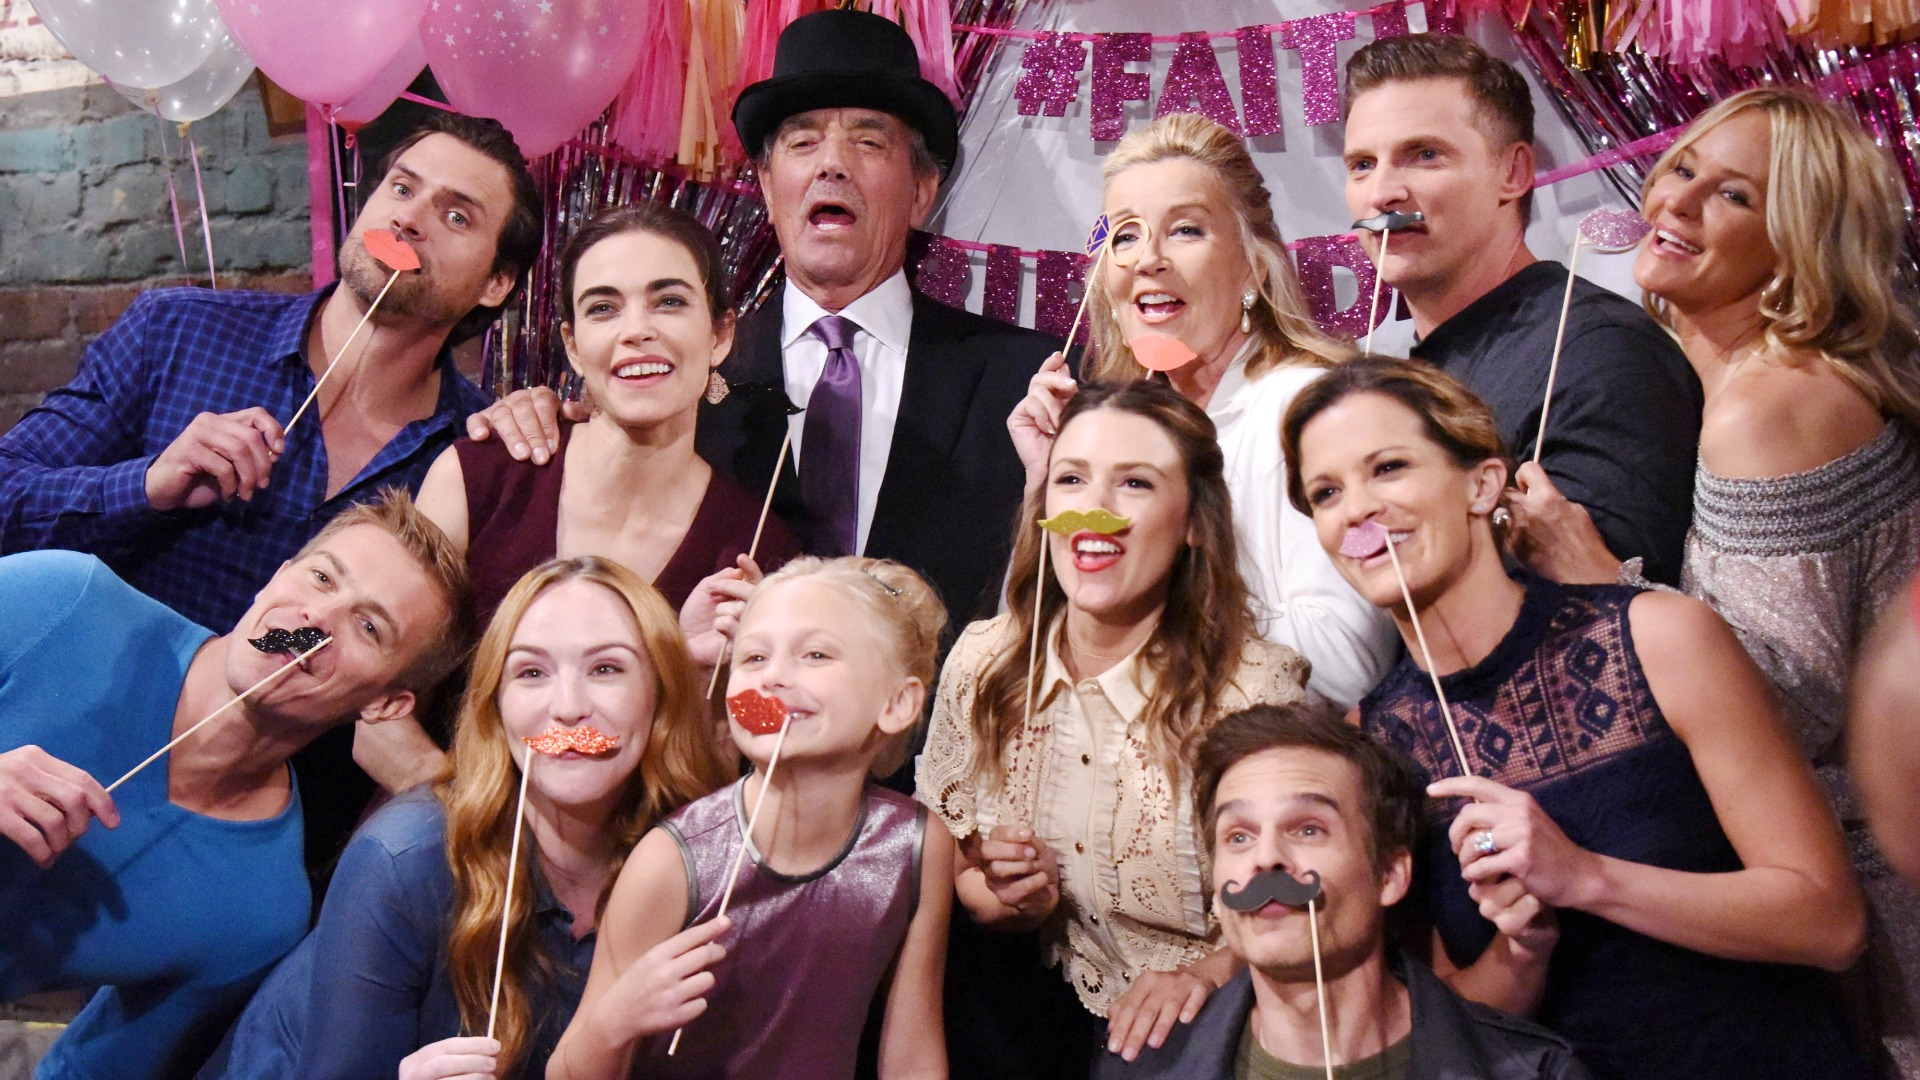 Everyone got their mustache on!